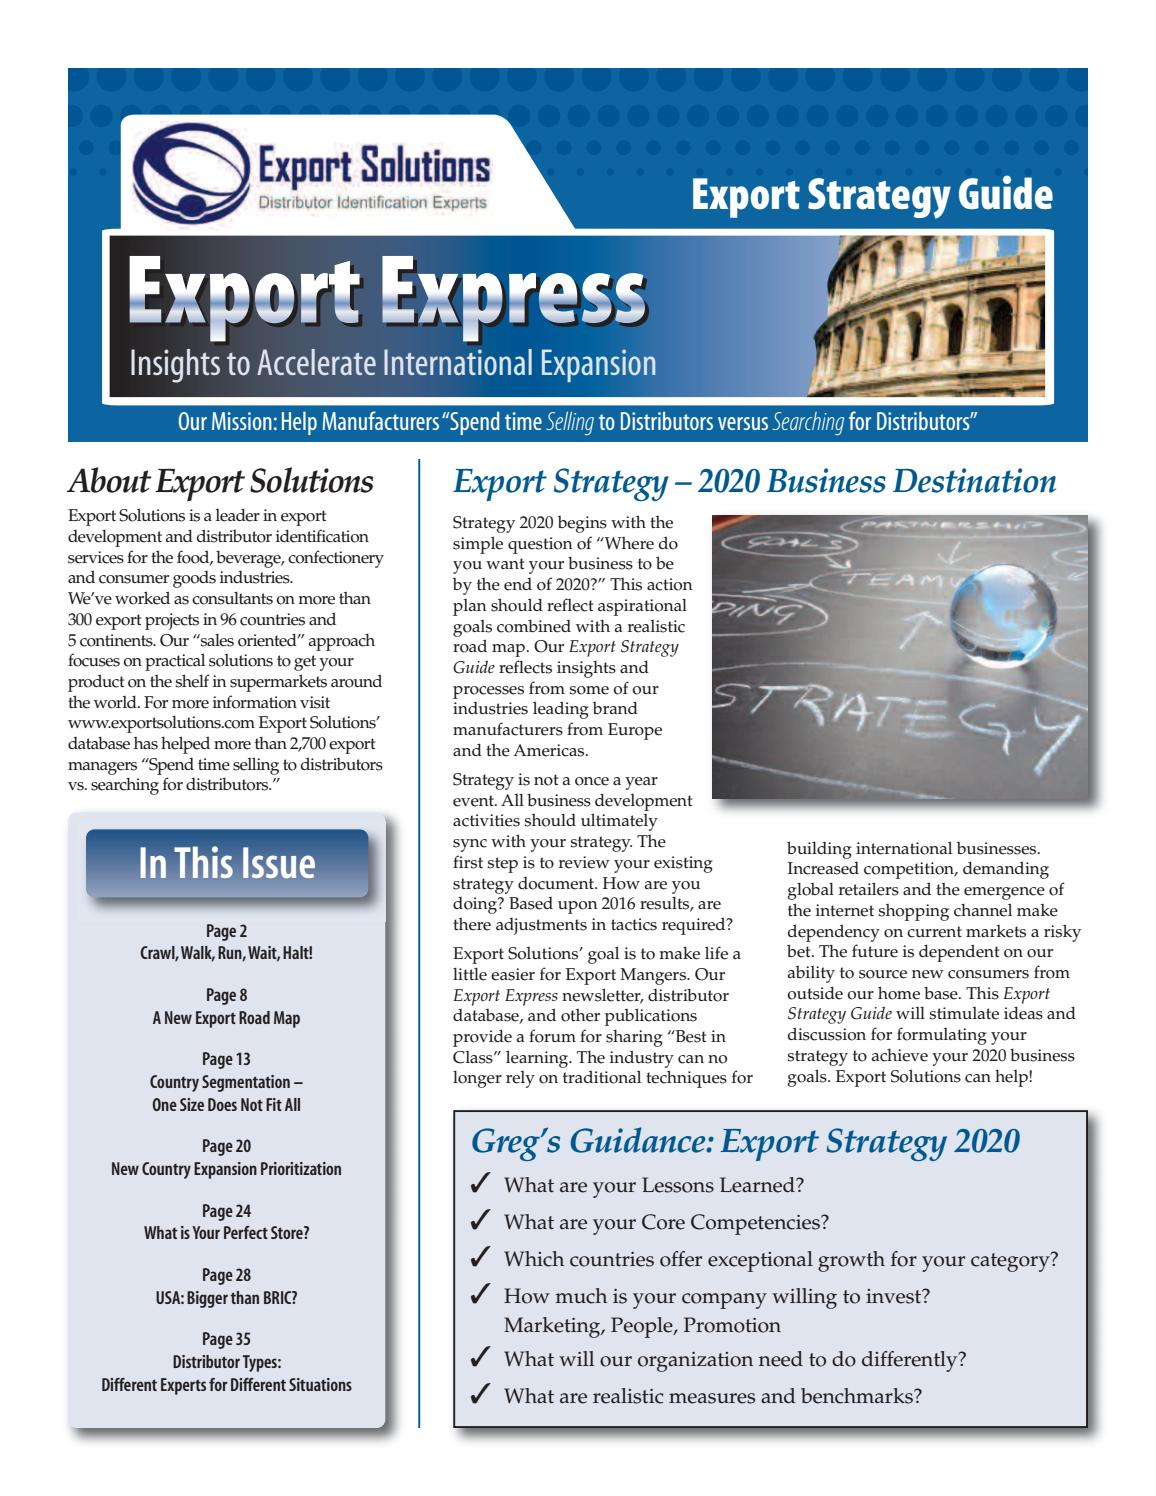 Export Strategy Guide 2017 by Gregory Seminara - issuu